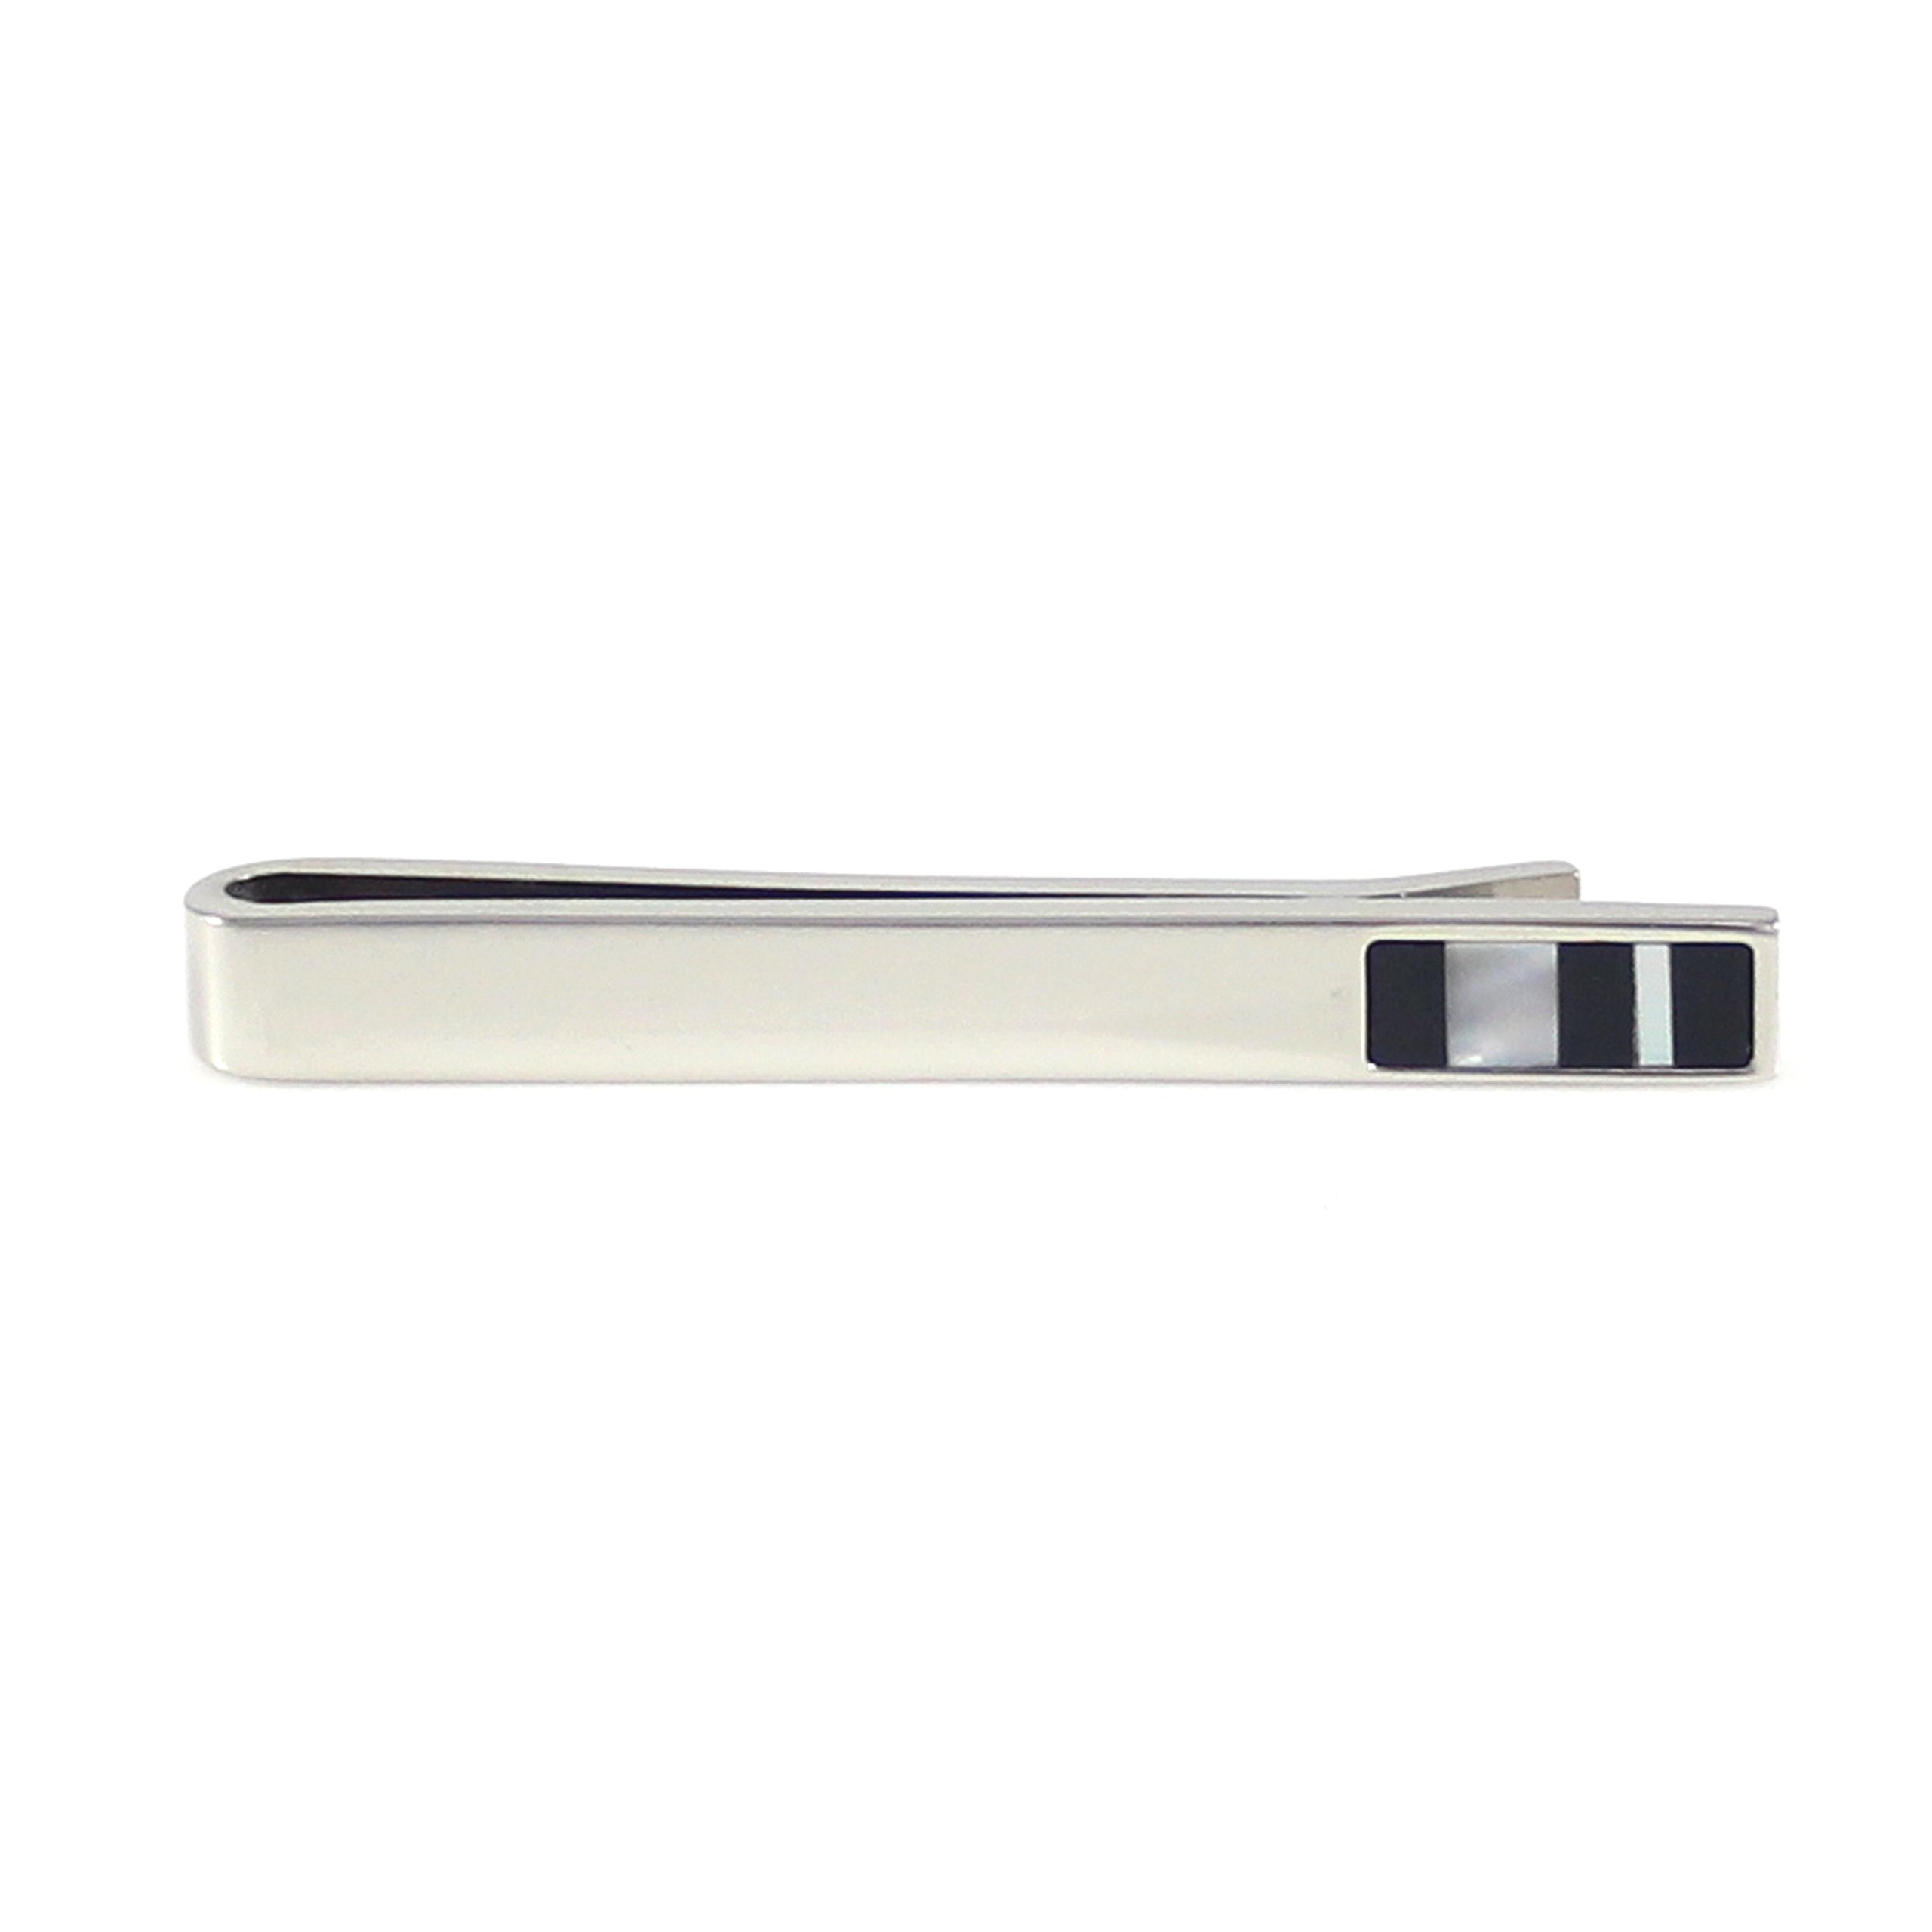 MENDEPOT Classic Rhodium Plated Mother Of Pearl And Onyx Stripes Tie Clip With Gift Box by MENDEPOT